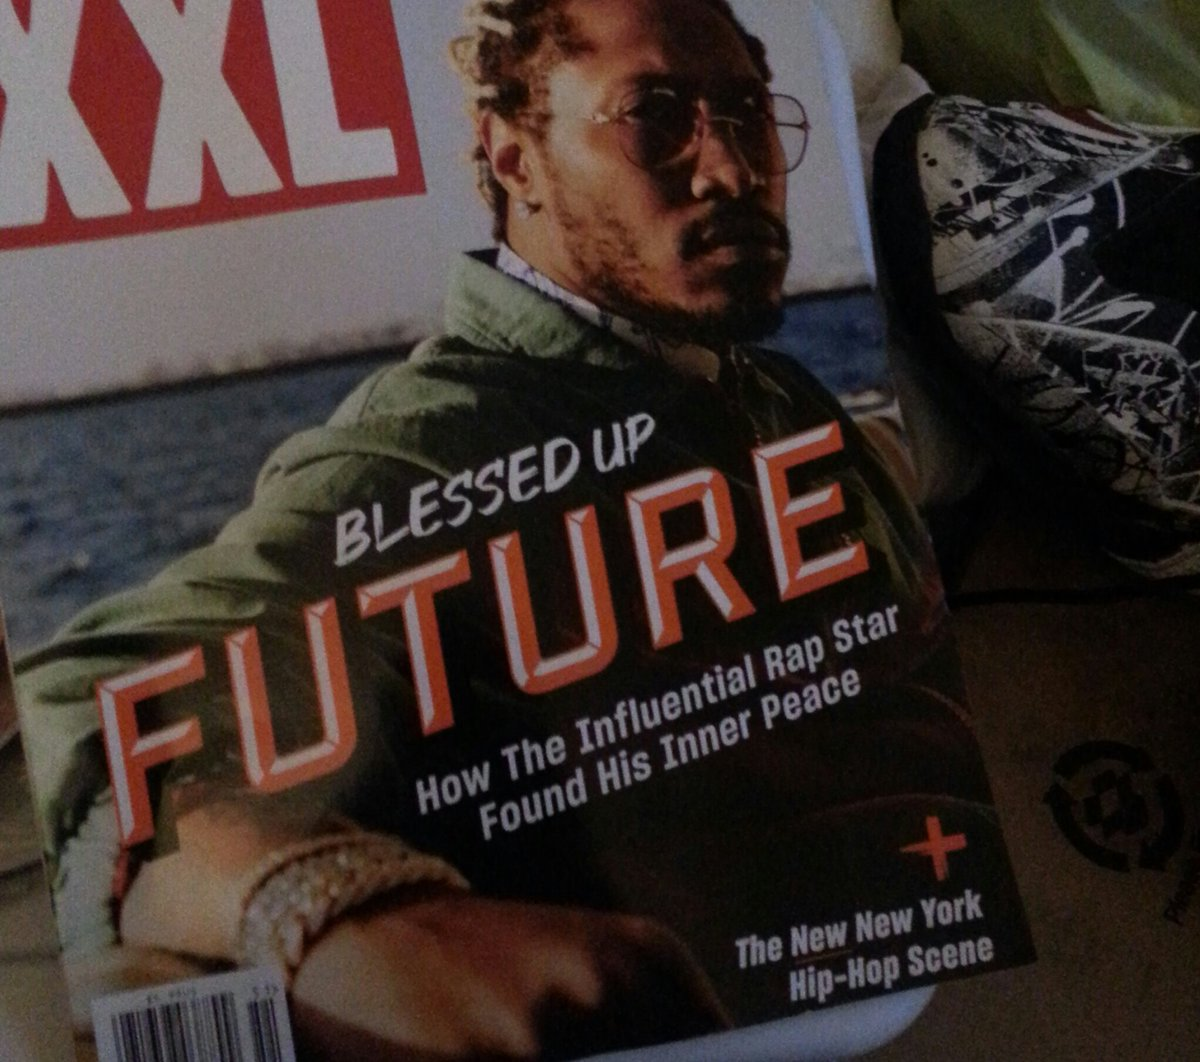 I haven't seen an #XXL magazine in so long! I had to buy it!! pic.twitter.com/xguqU1f1OZ